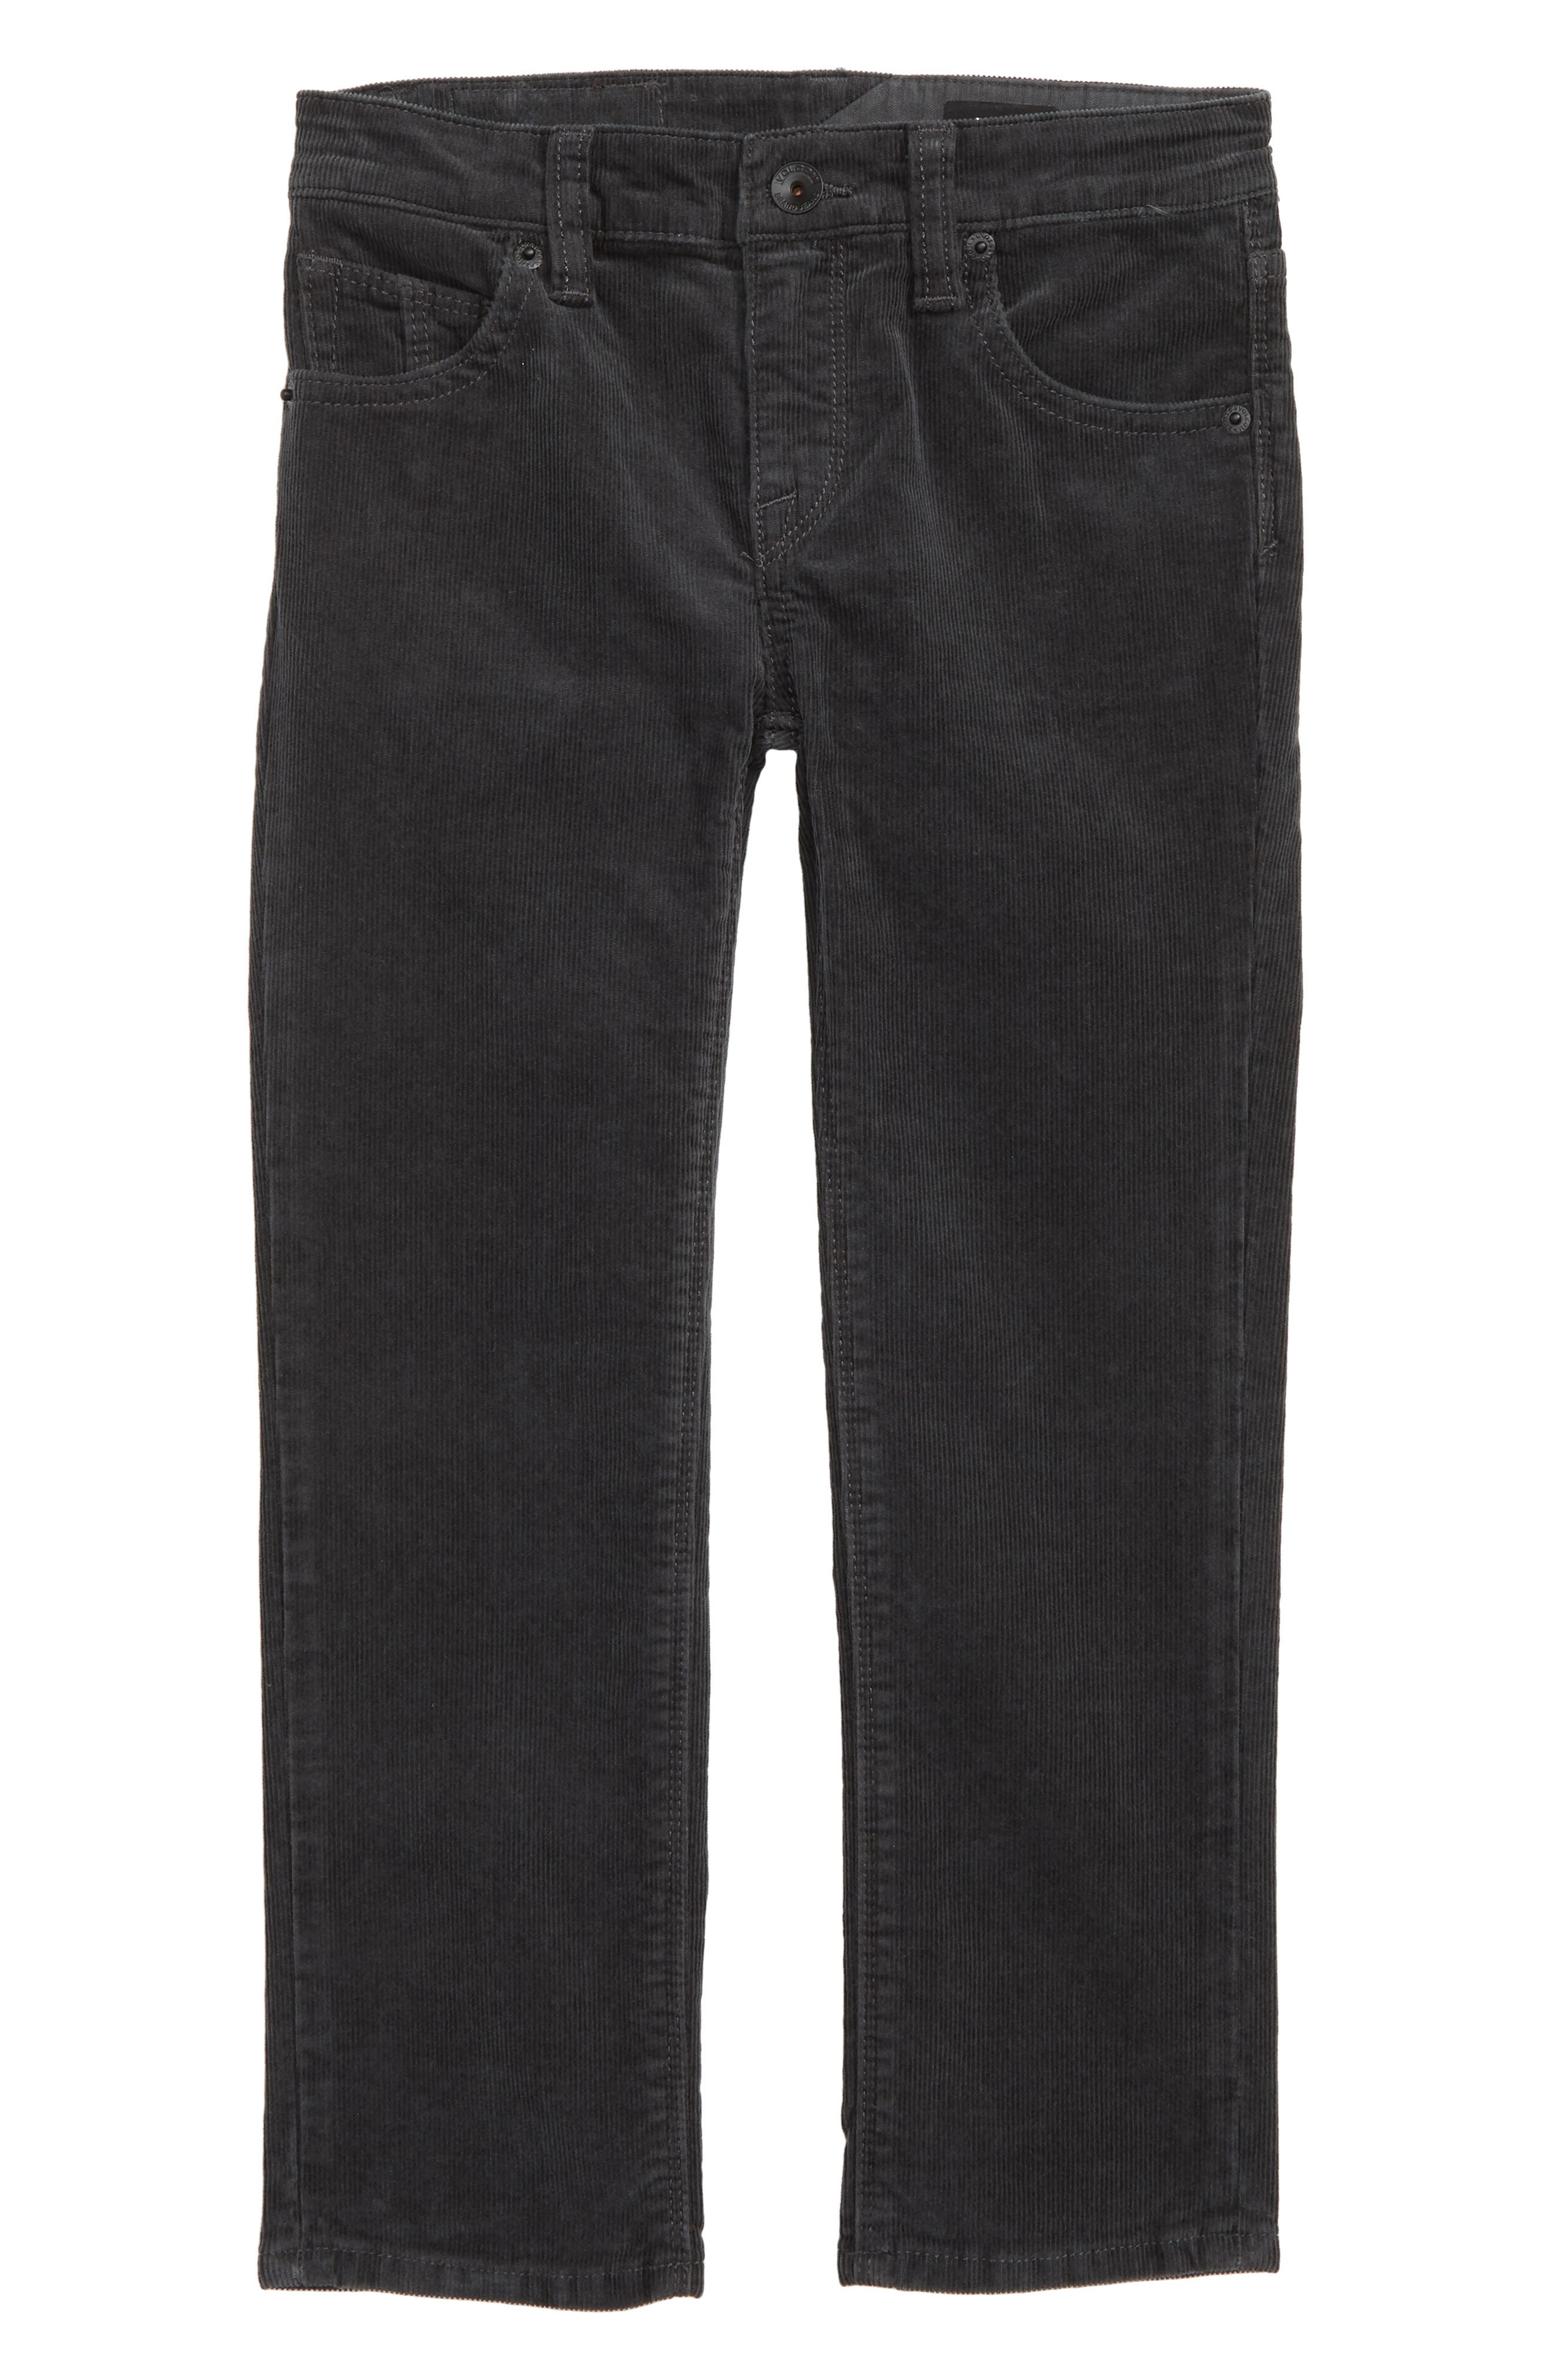 Vorta Slim Fit Corduroy Jeans,                         Main,                         color, STEALTH